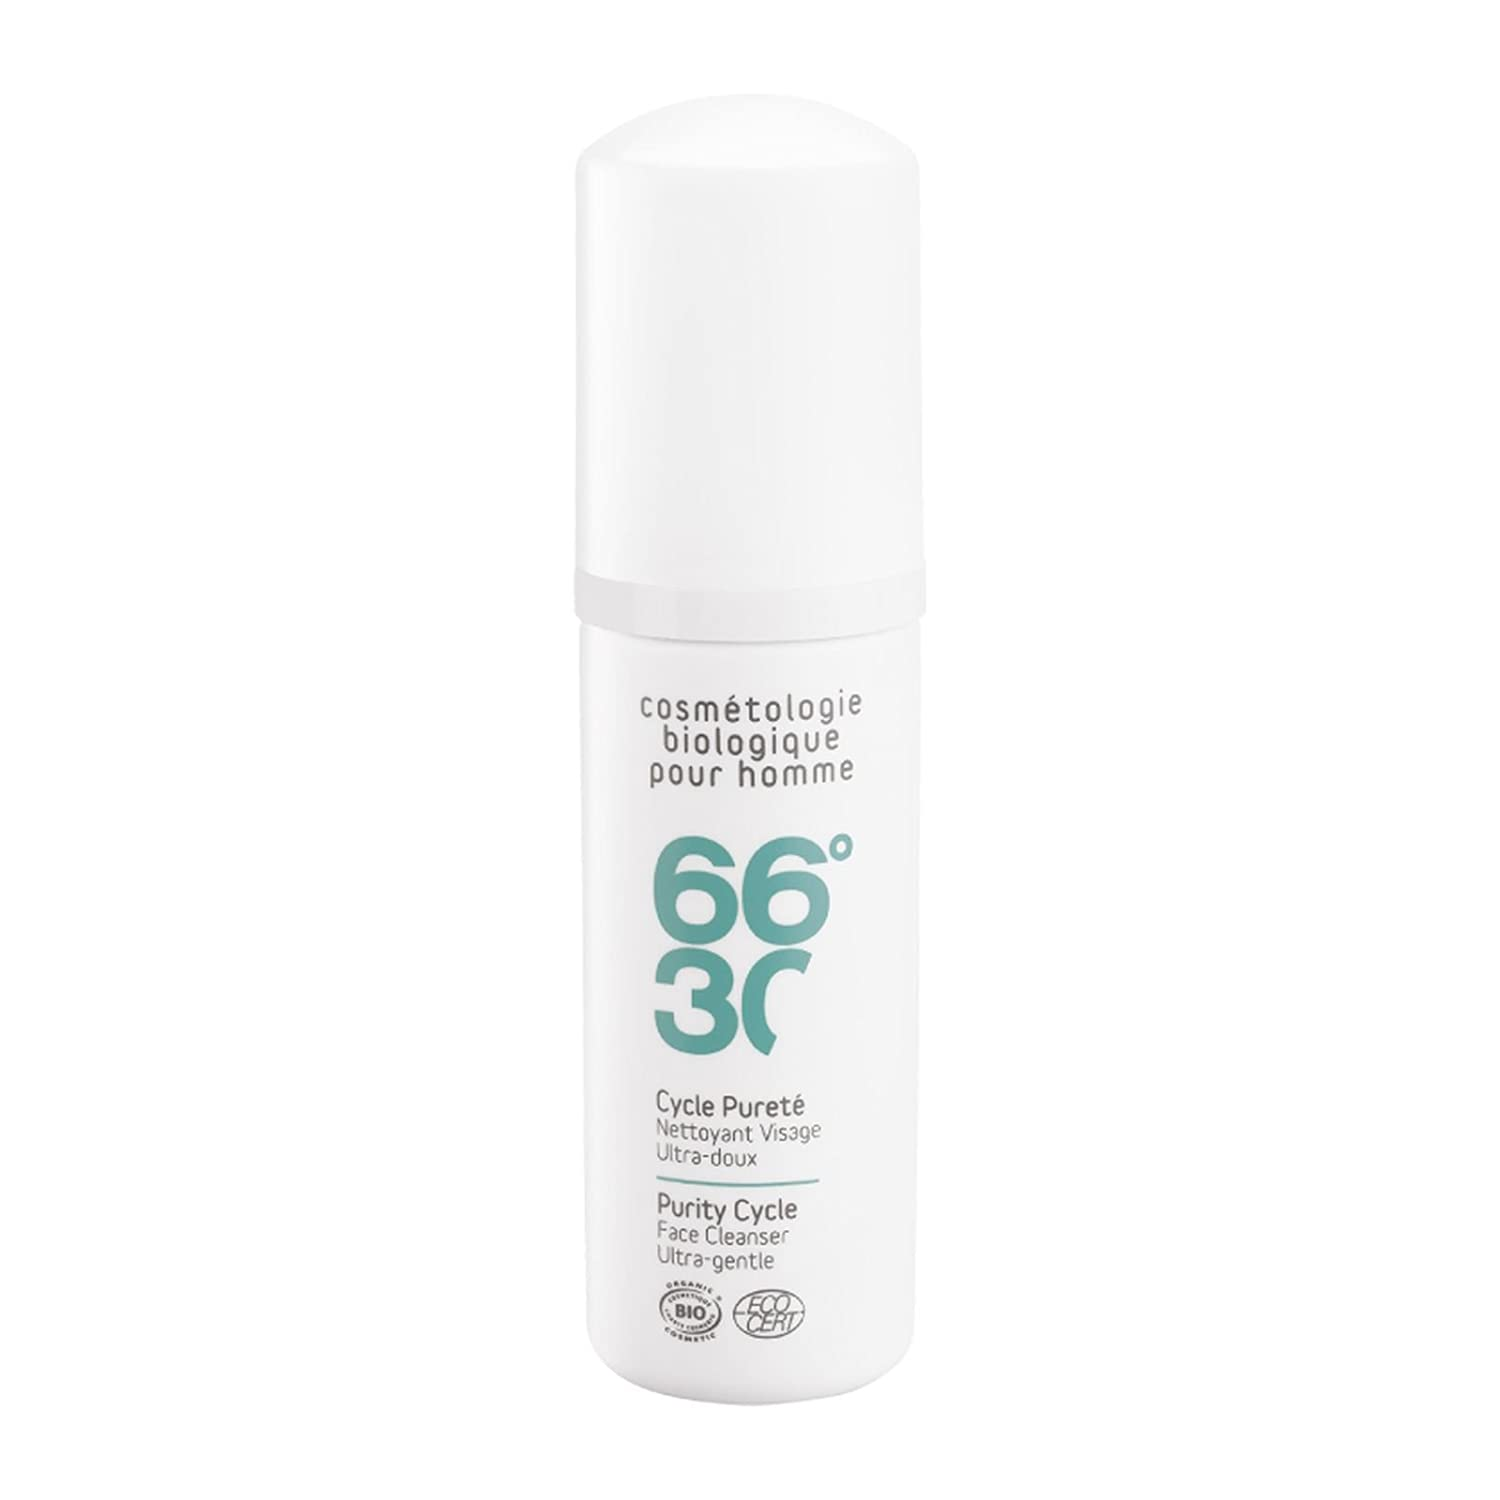 66°30 Purity Cycle Daily Face Cleanser Ultra-gentle, 1er Pack (1 x 125 ml) 06002